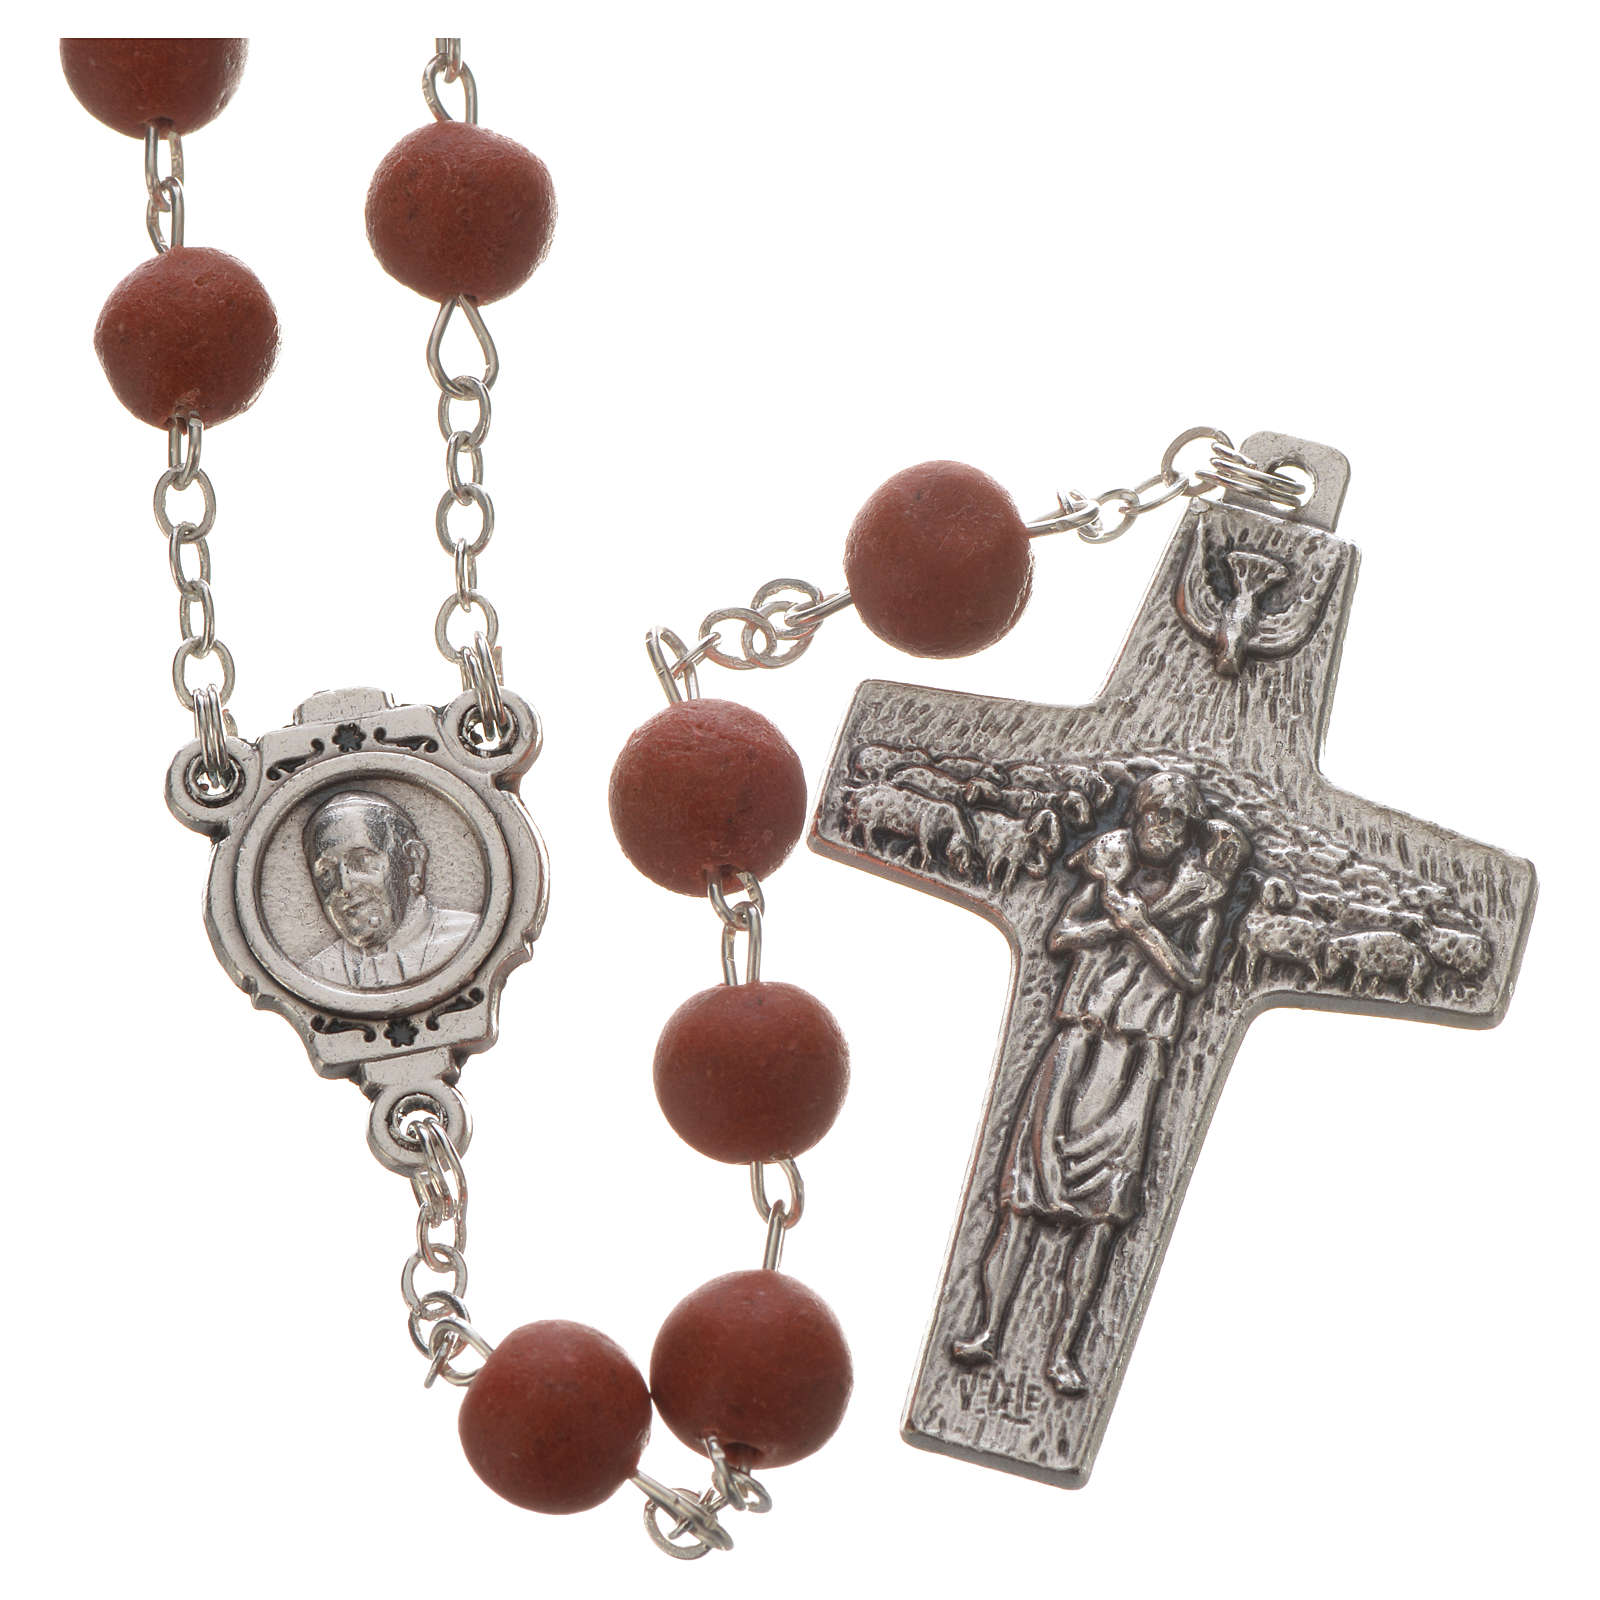 Jasmine perfumed rosary beads, red, Pope Francis 4